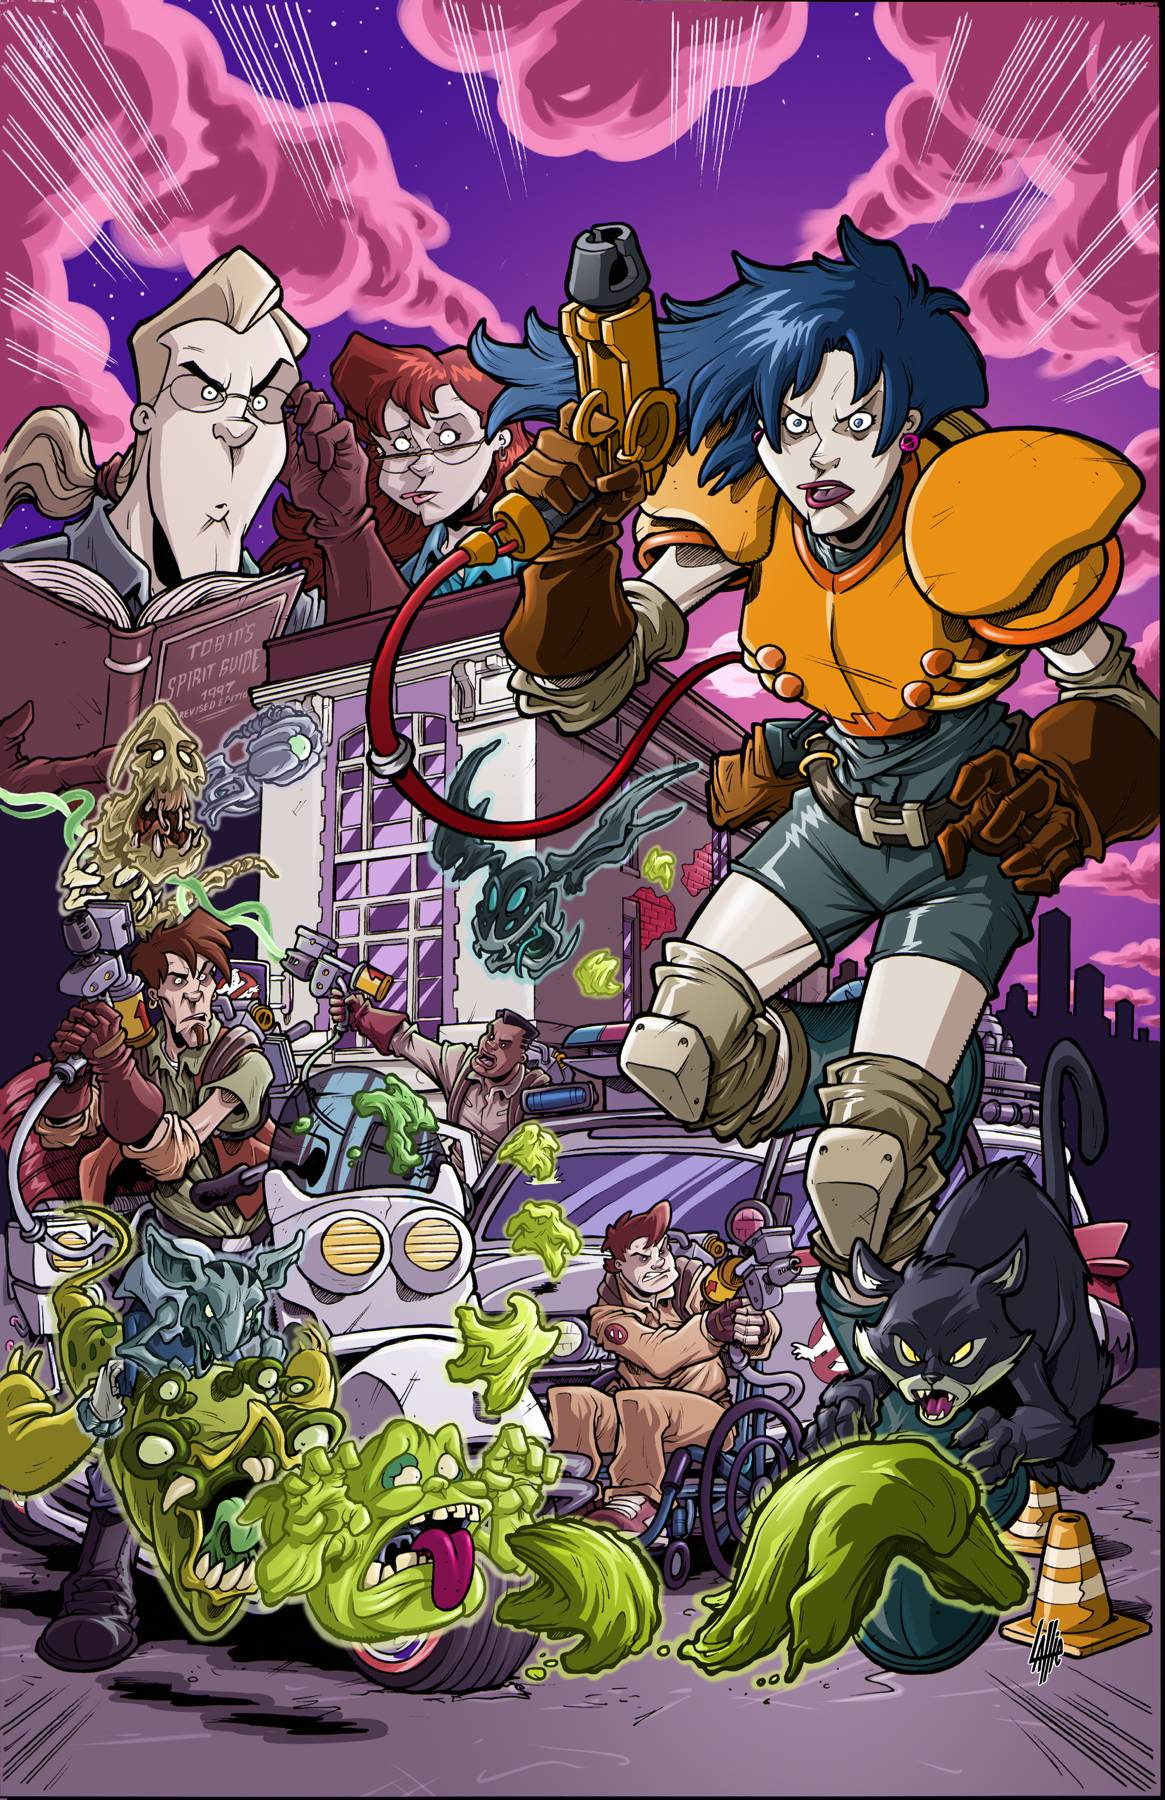 GHOSTBUSTERS 35TH ANNIV EXTREME GHOSTBUSTERS 1 LATTIE.jpg